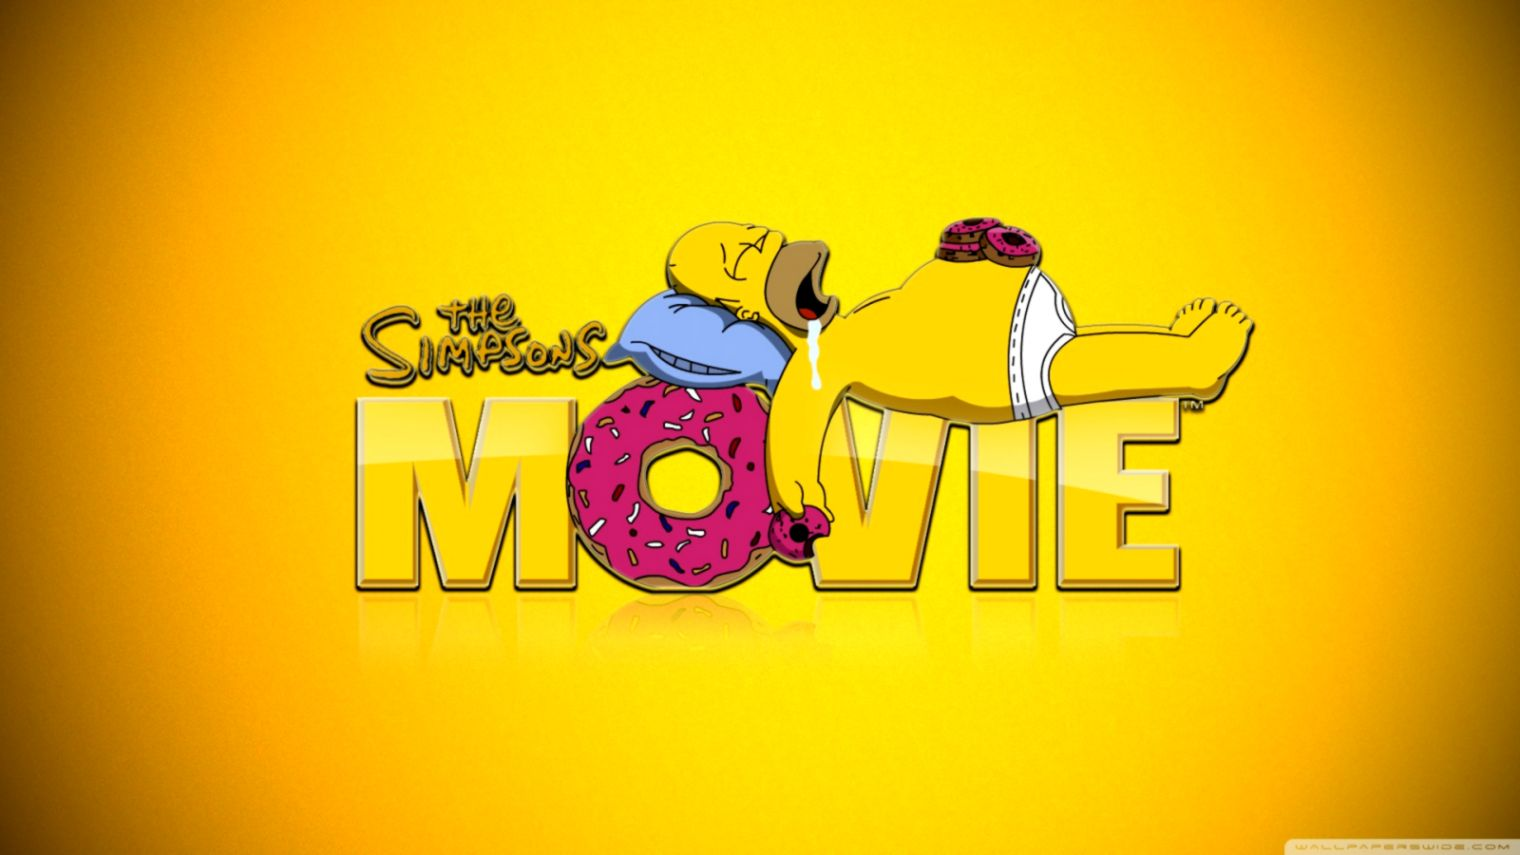 Simpsons Hd Wallpaper Wallpapers Abstract